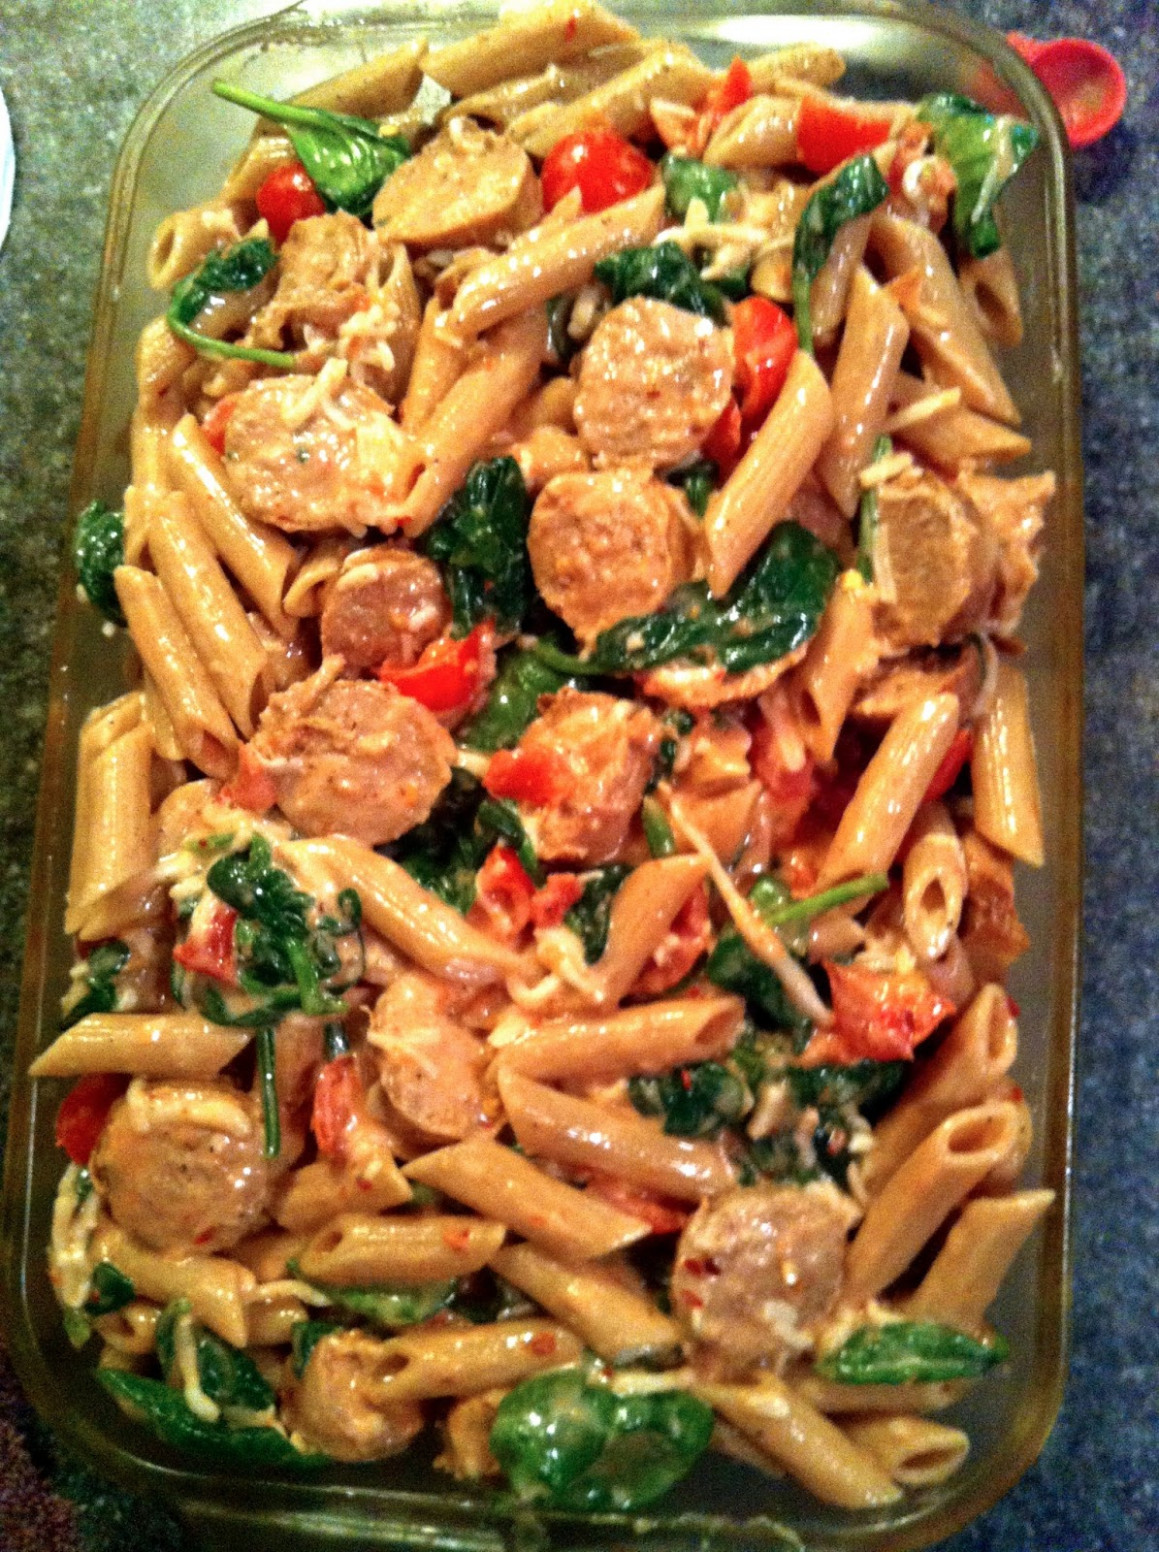 taylor made: light pasta bake with chicken sausage ...